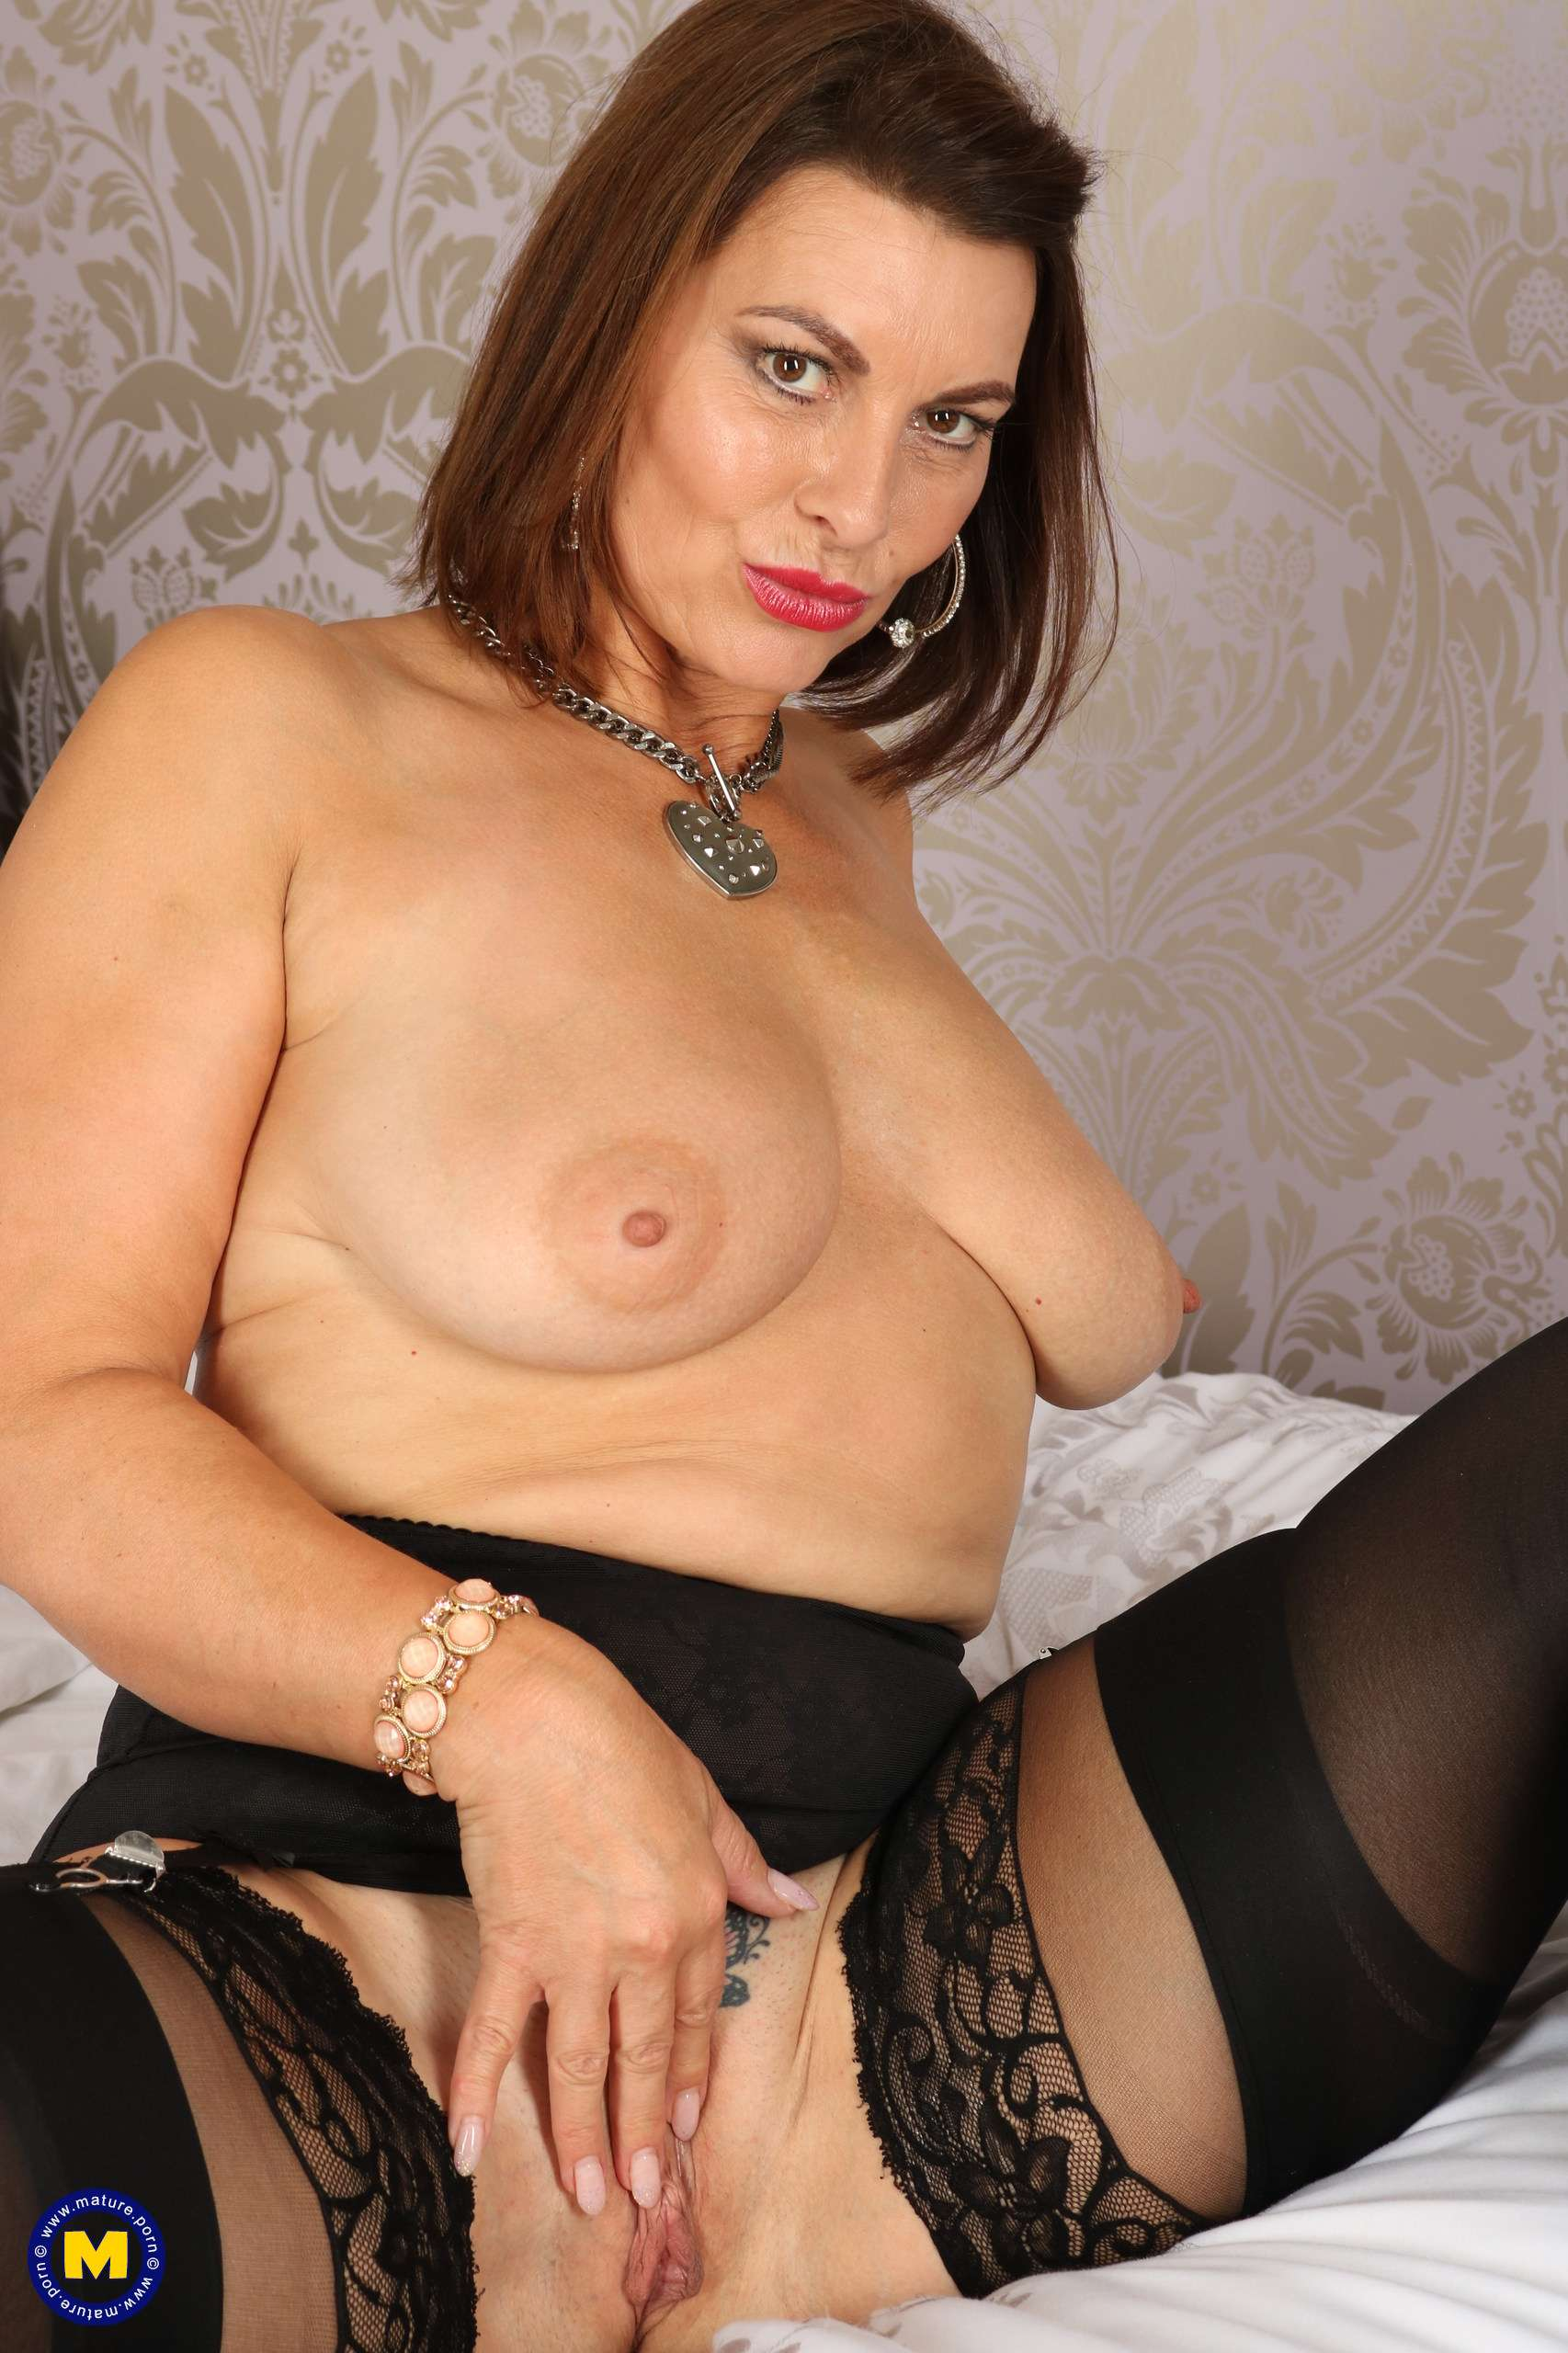 Hot British MILF playing with herself and getting wet